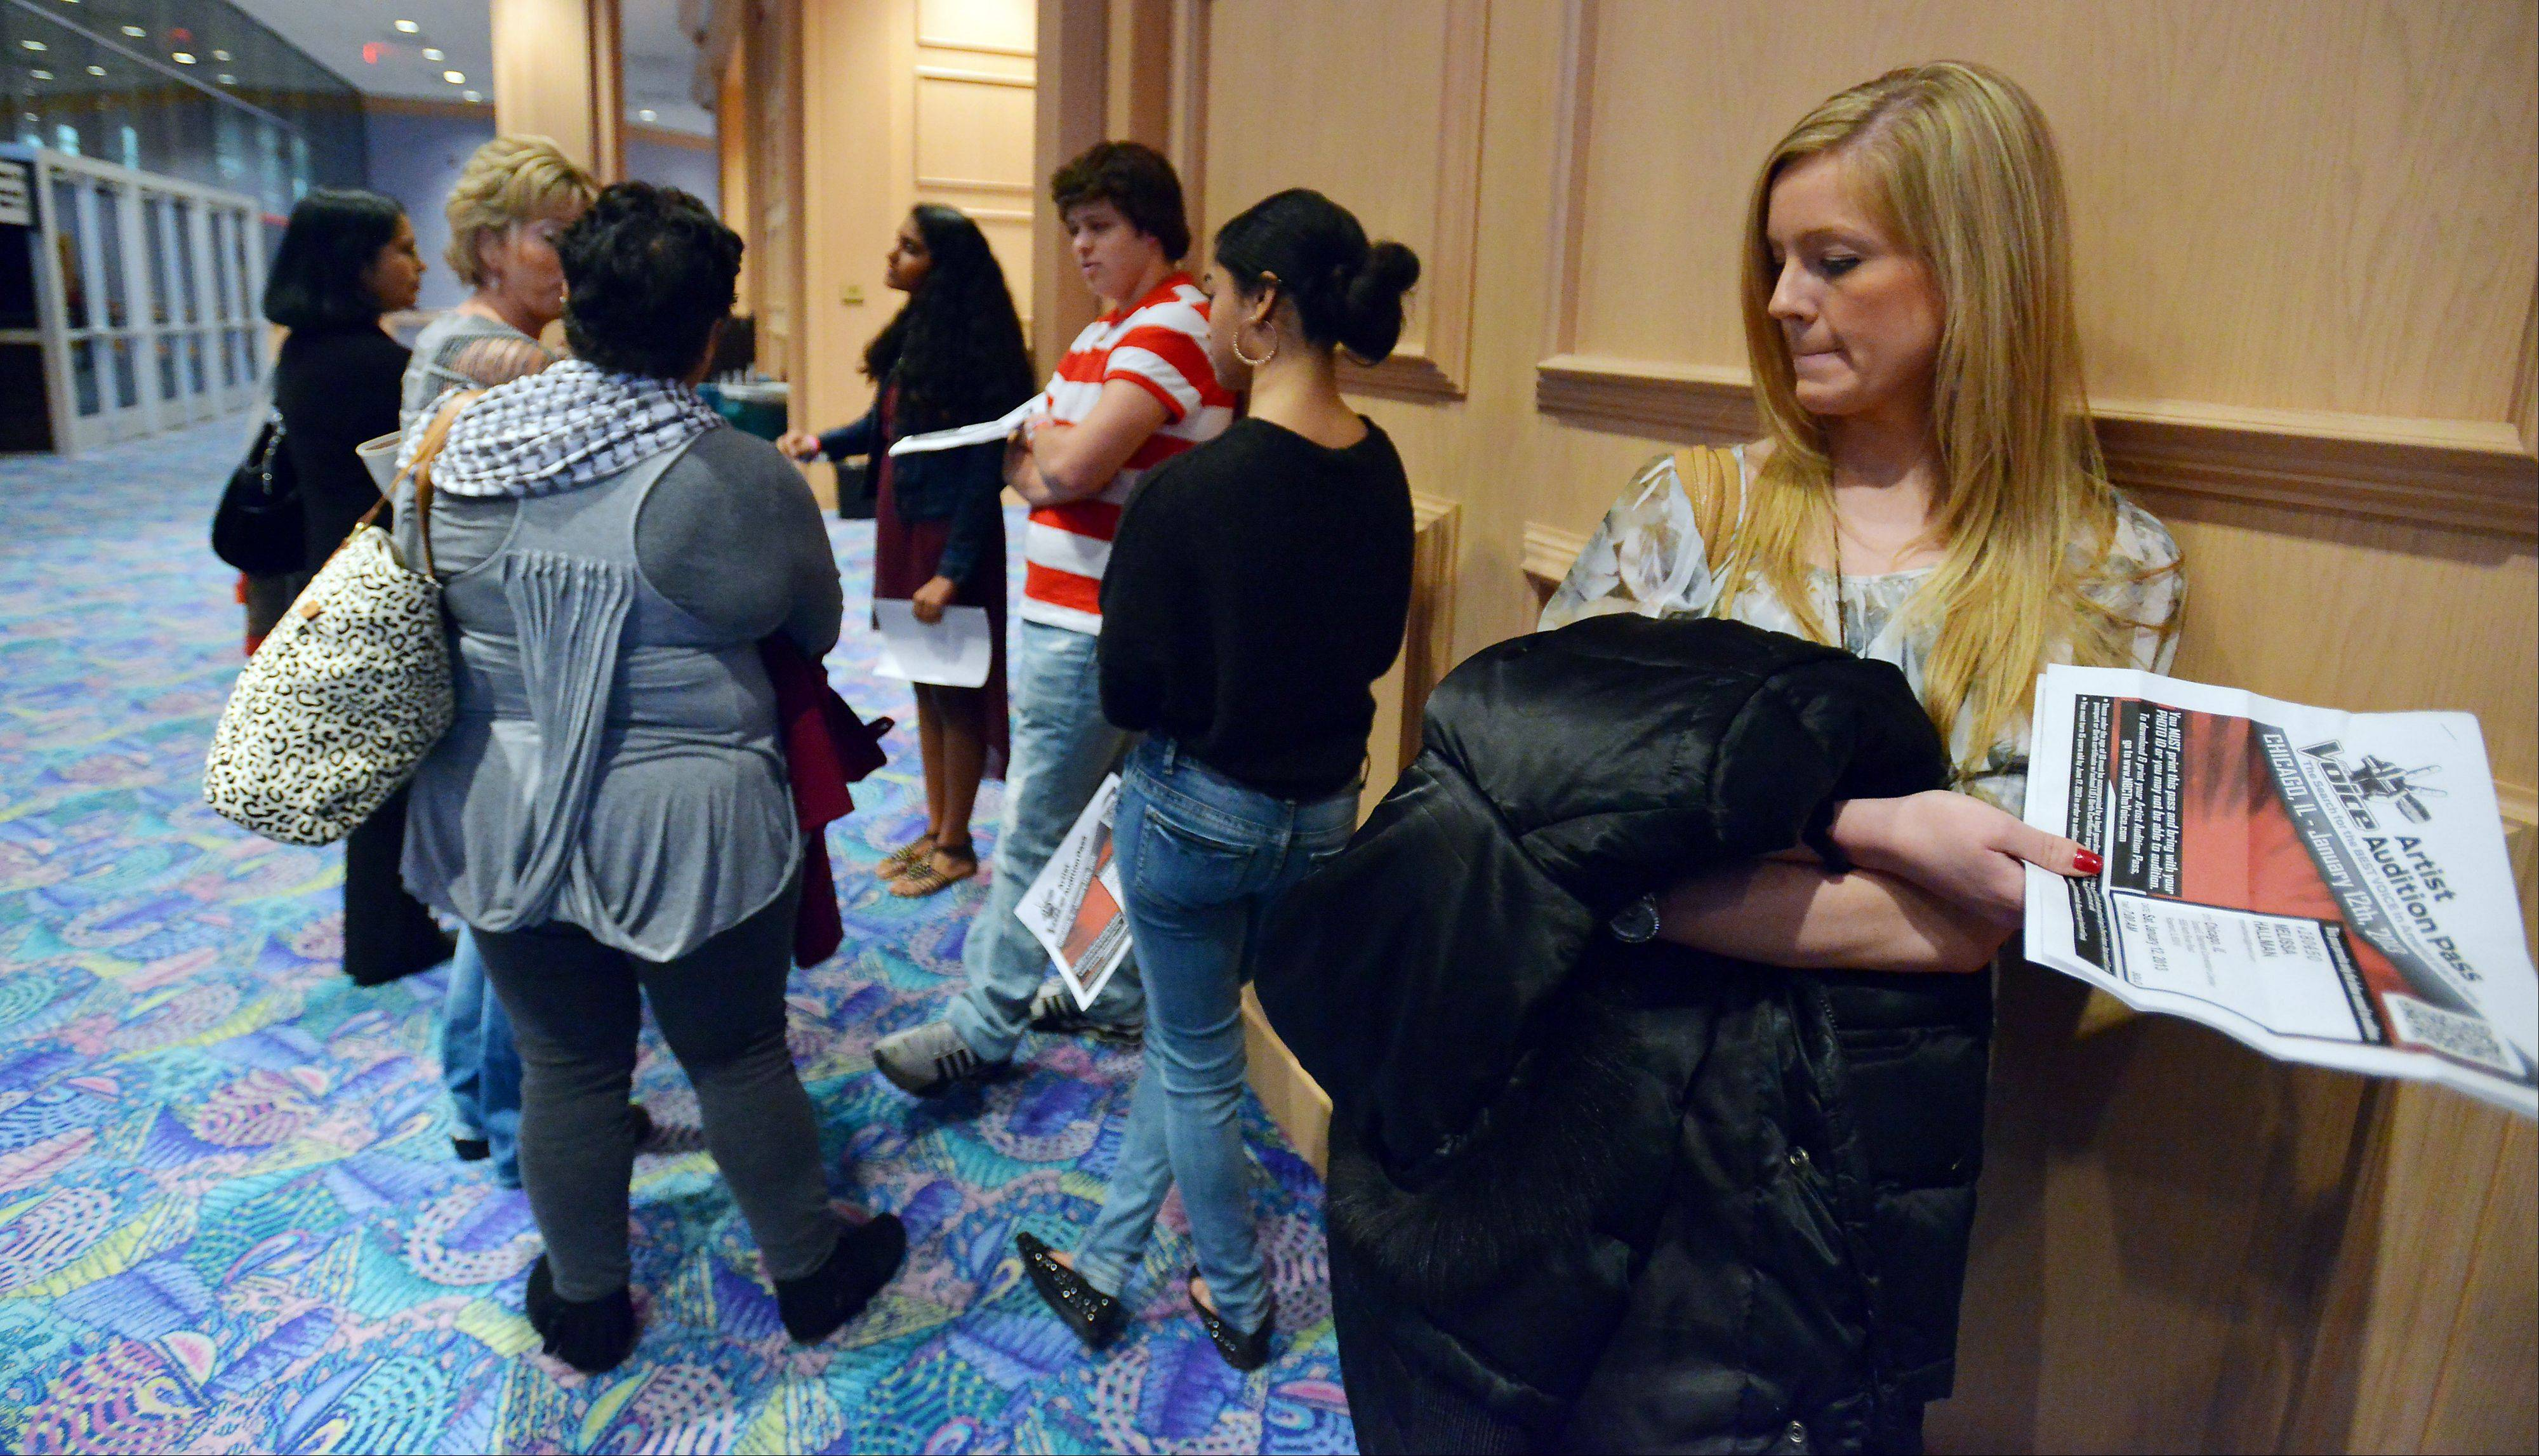 Melissa Hallman, 25, of Barrington, appears nervous as she stands in one of many lines with others during the course of Saturday morning auditions for The Voice at Donald E. Stephens Convention Hall. She did not make it to the next round.